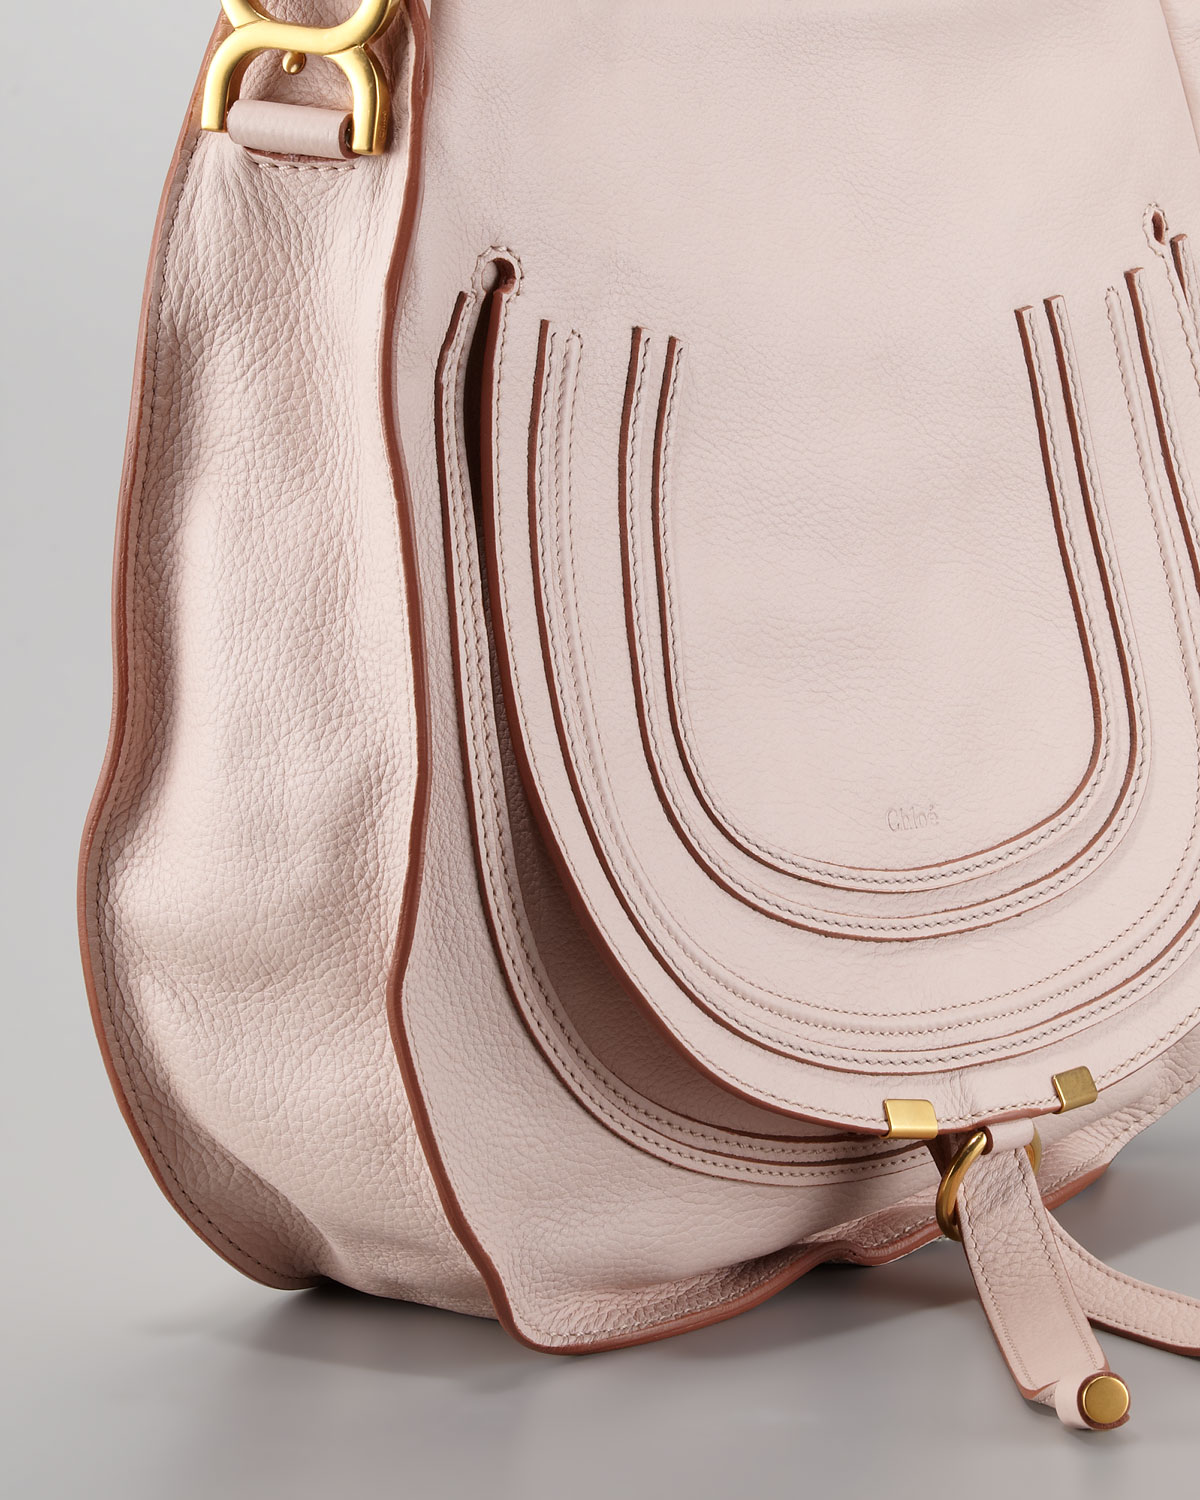 89ff513389e5 Lyst - Chloé Marcie Medium Hobo Bag Nude Pink in Pink